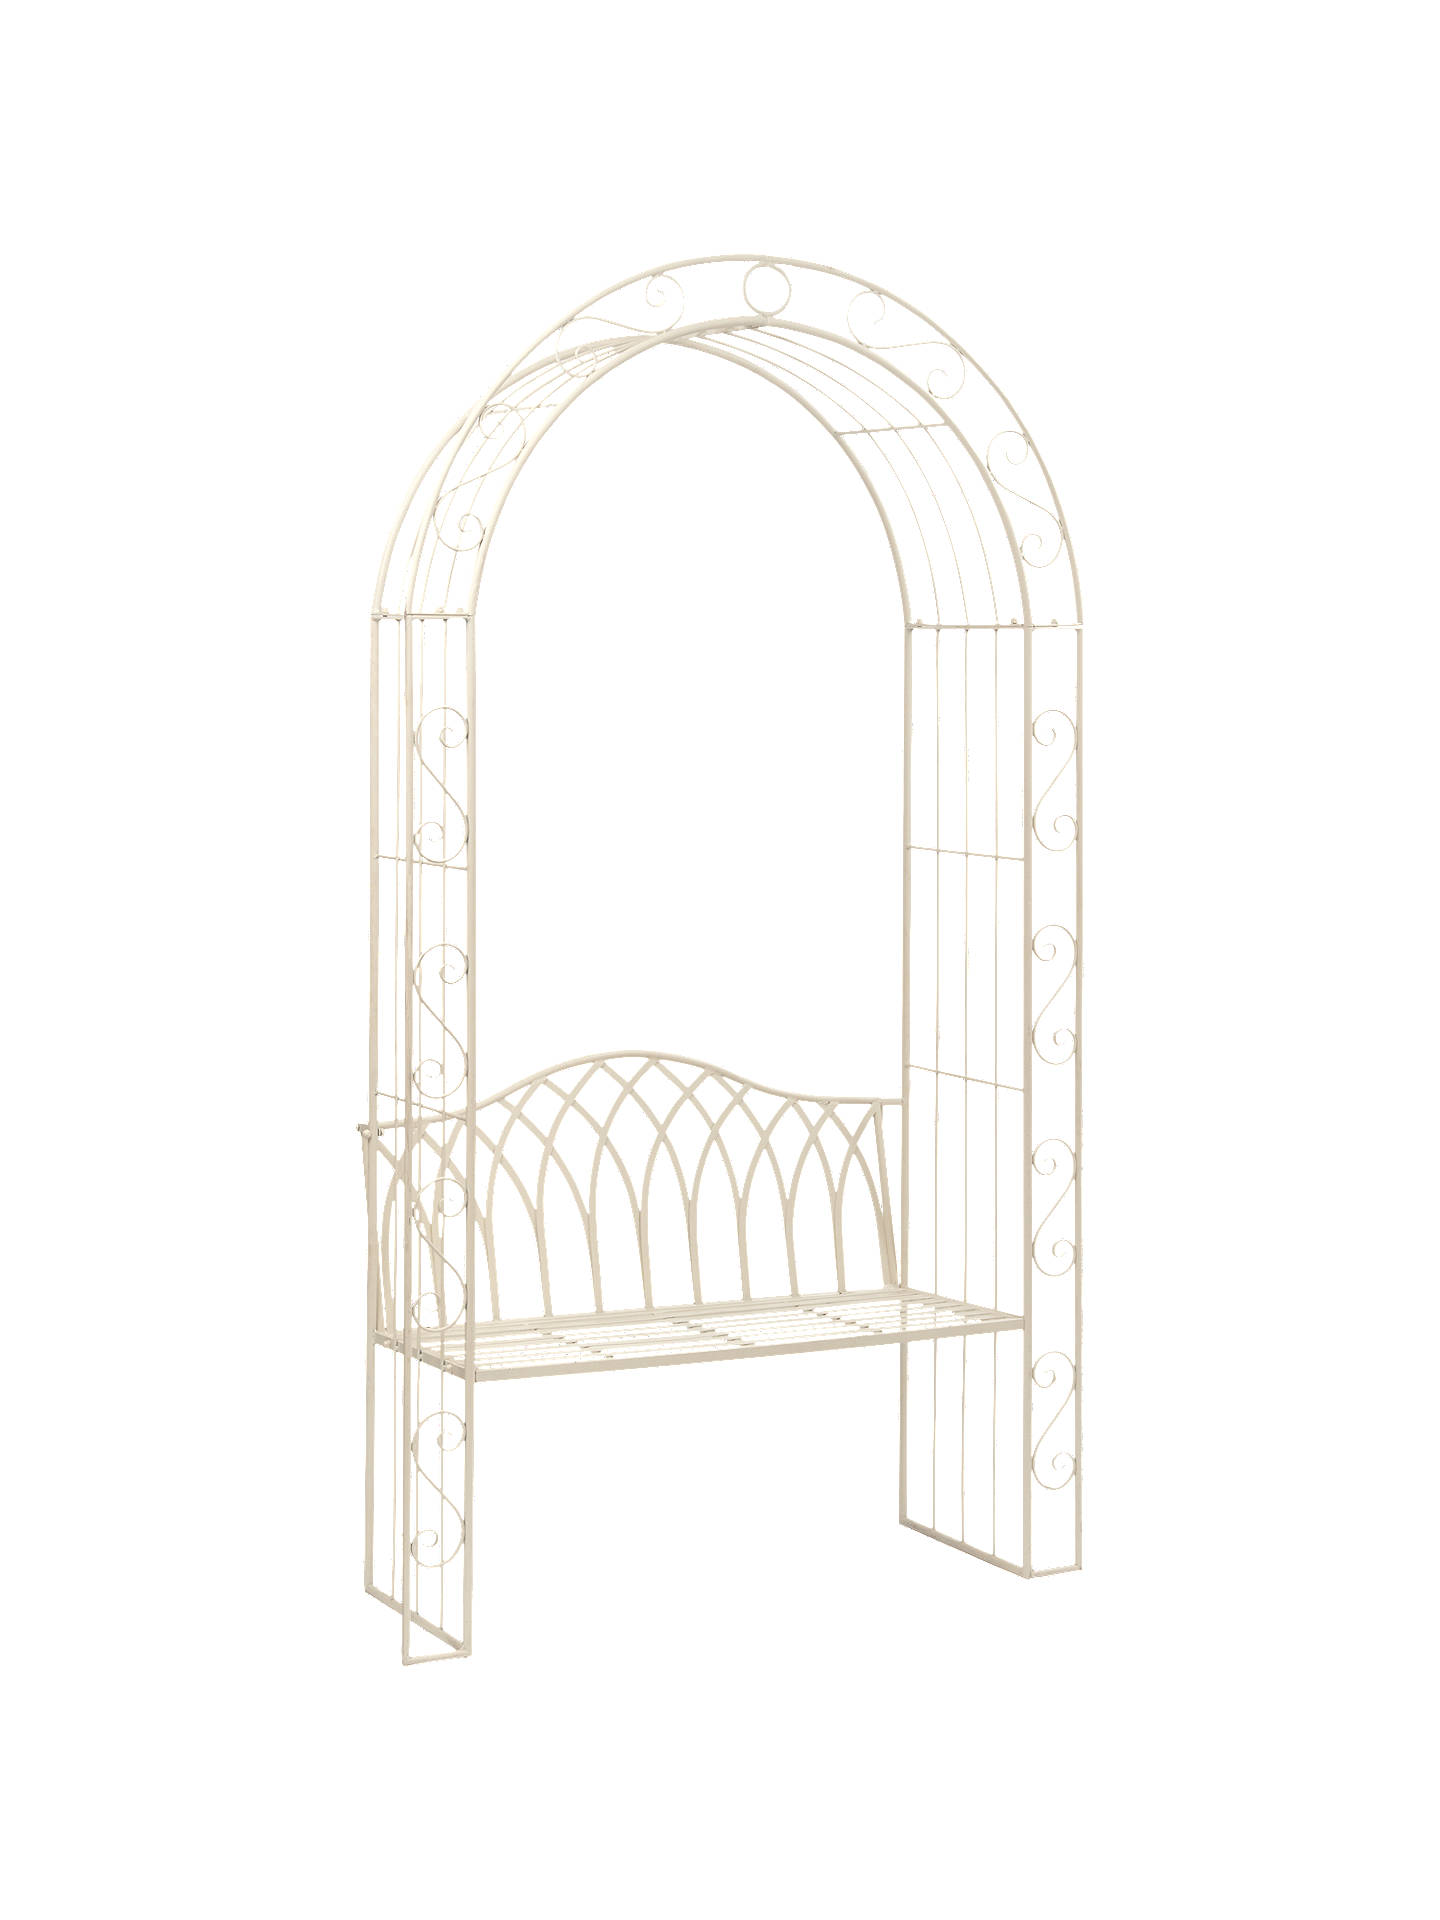 Buysuntime gloucester arch and bench white online at johnlewis com